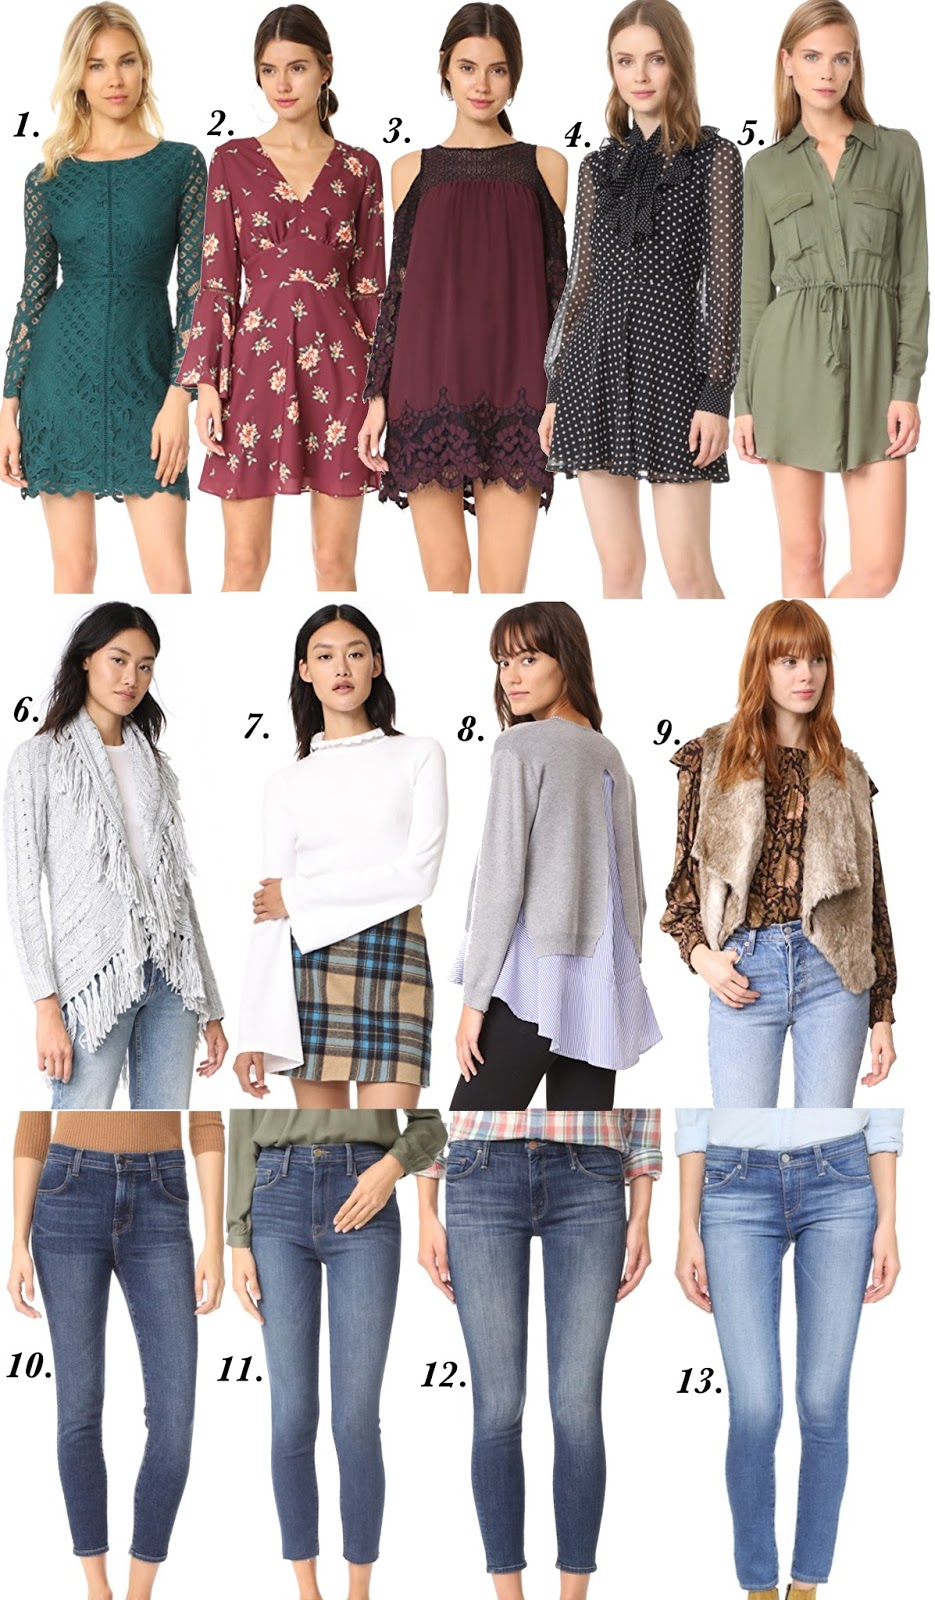 Shopbop Sale - Something Delightful Blog